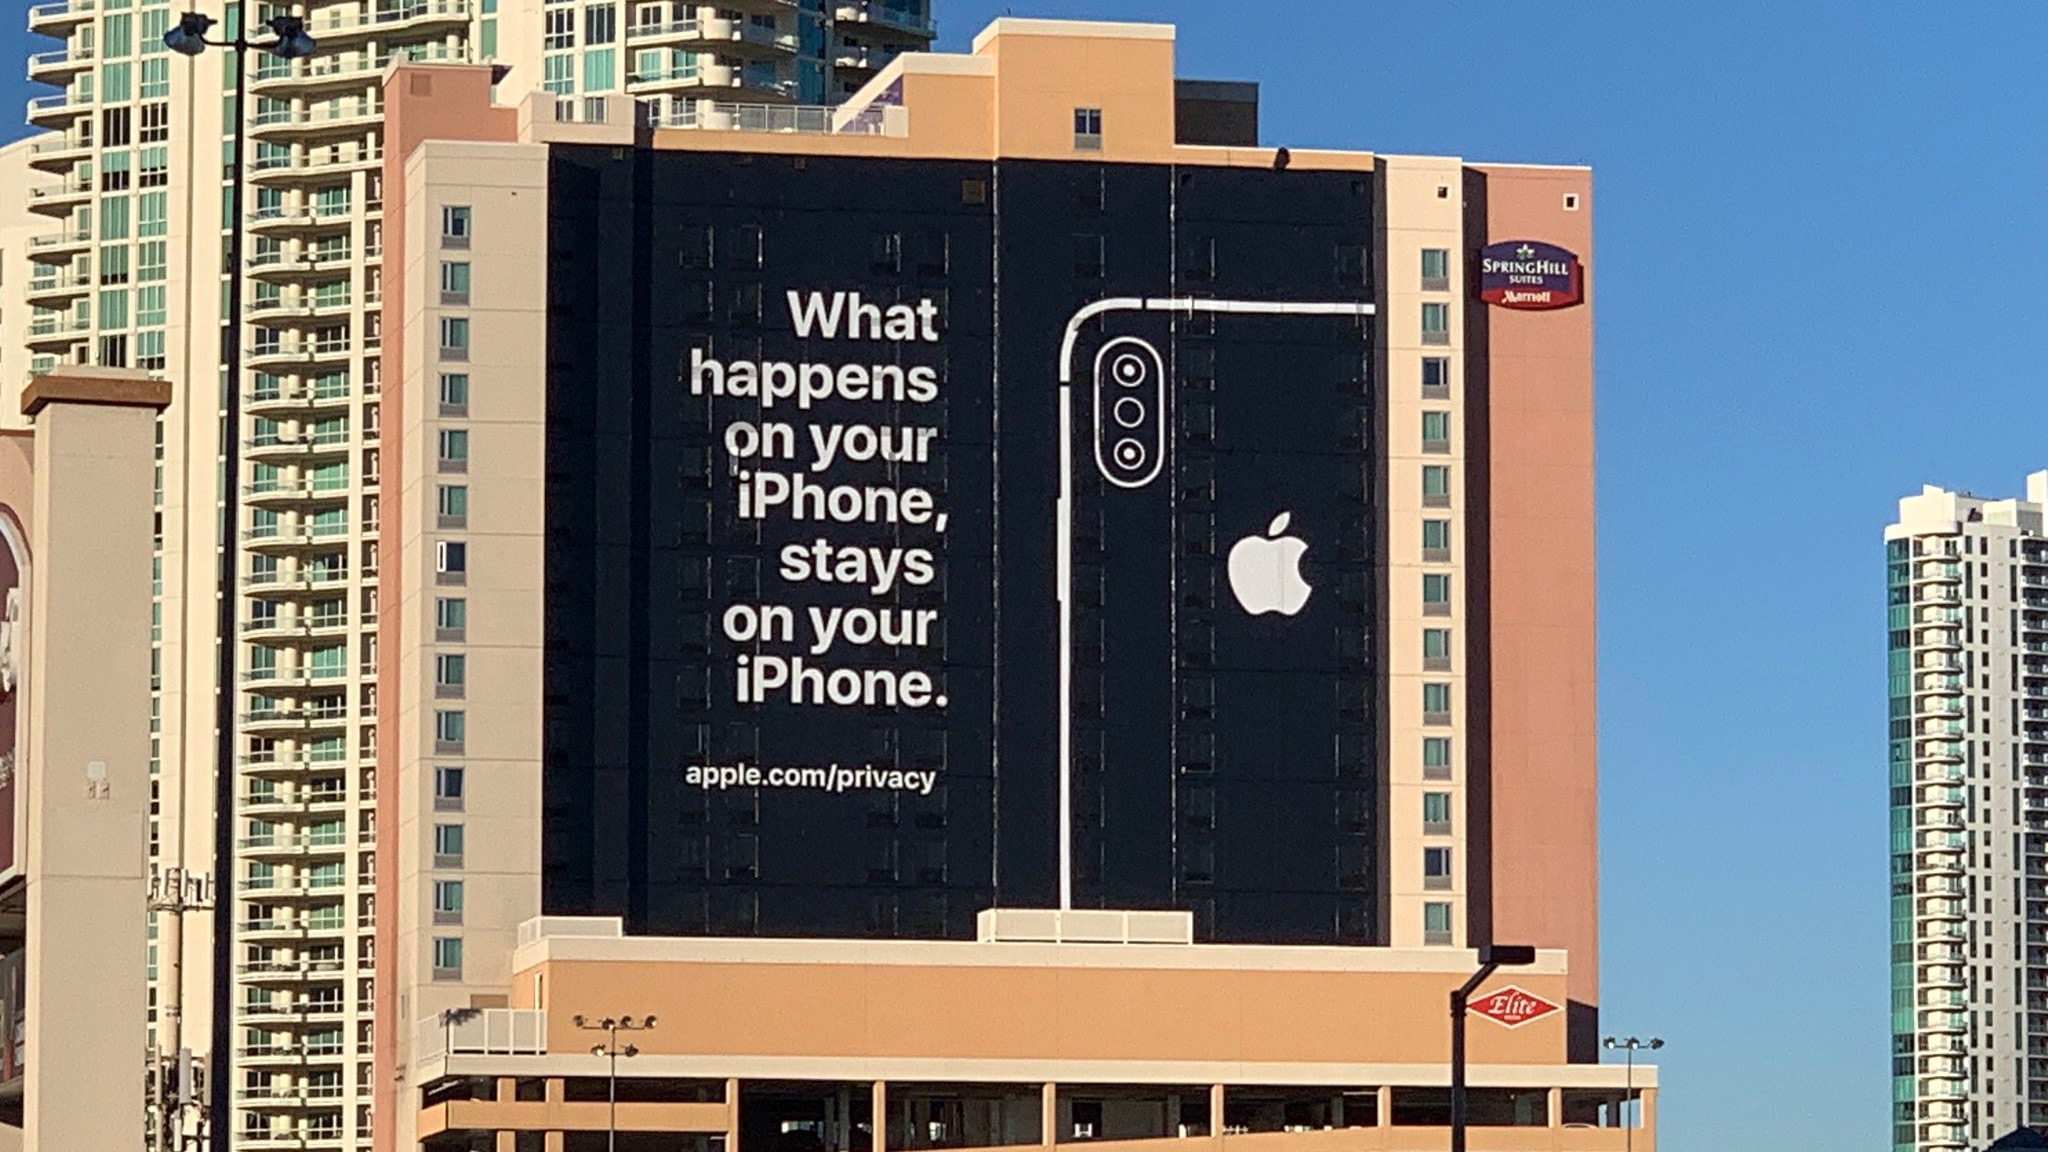 Ahead of CES, Apple touts 'what happens on your iPhone ...